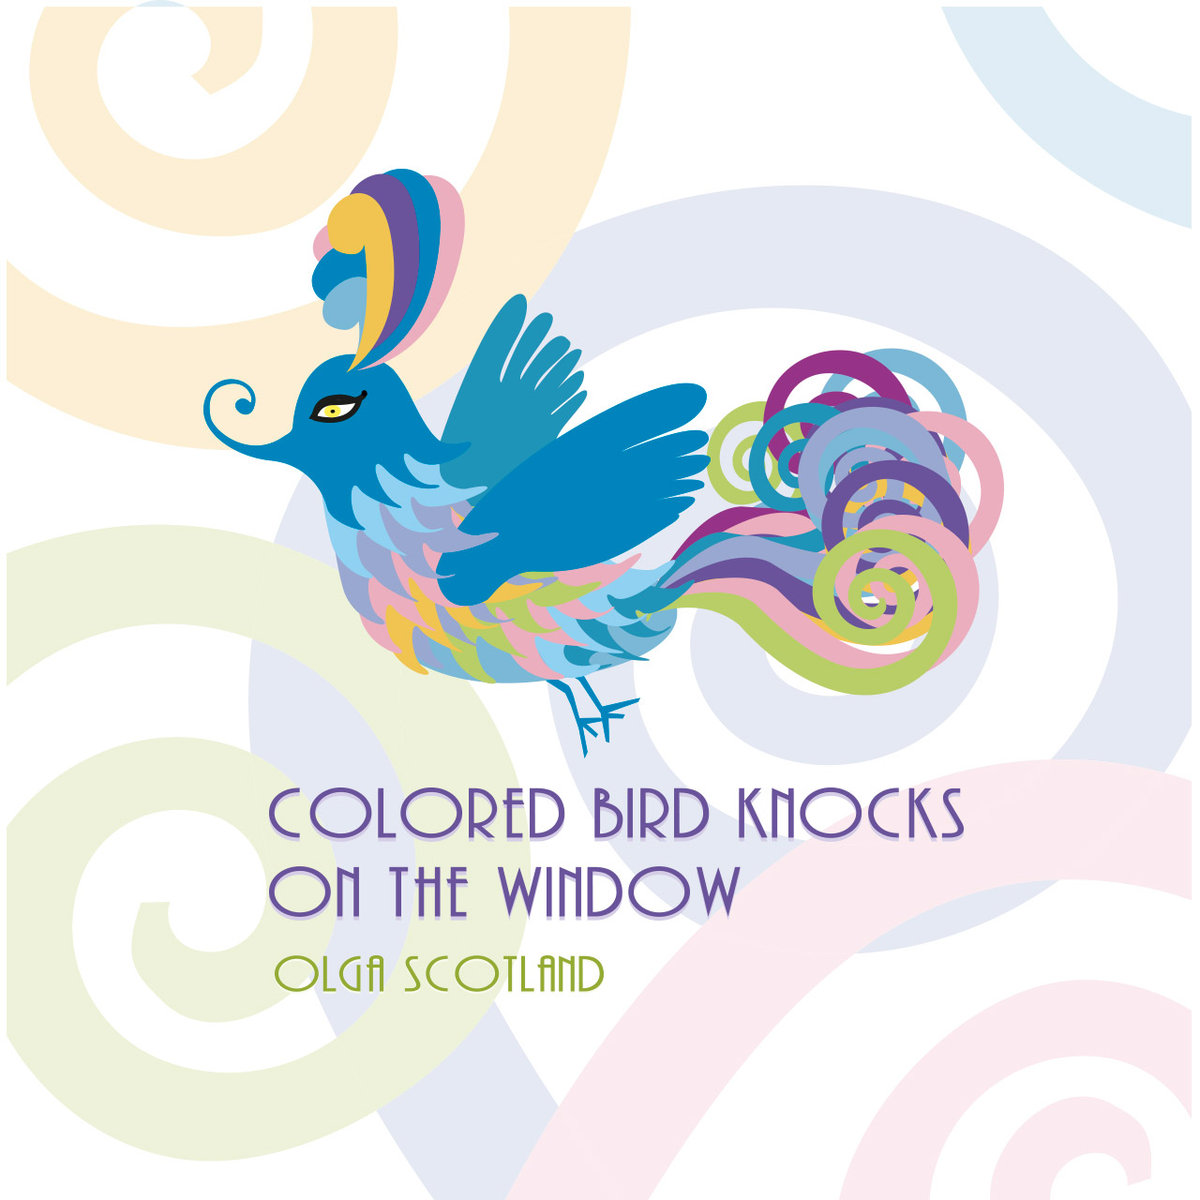 Olga Scotland - Sunny Meditation @ 'Colored Bird Knocks On The Window' album (soundtrack, ambient)